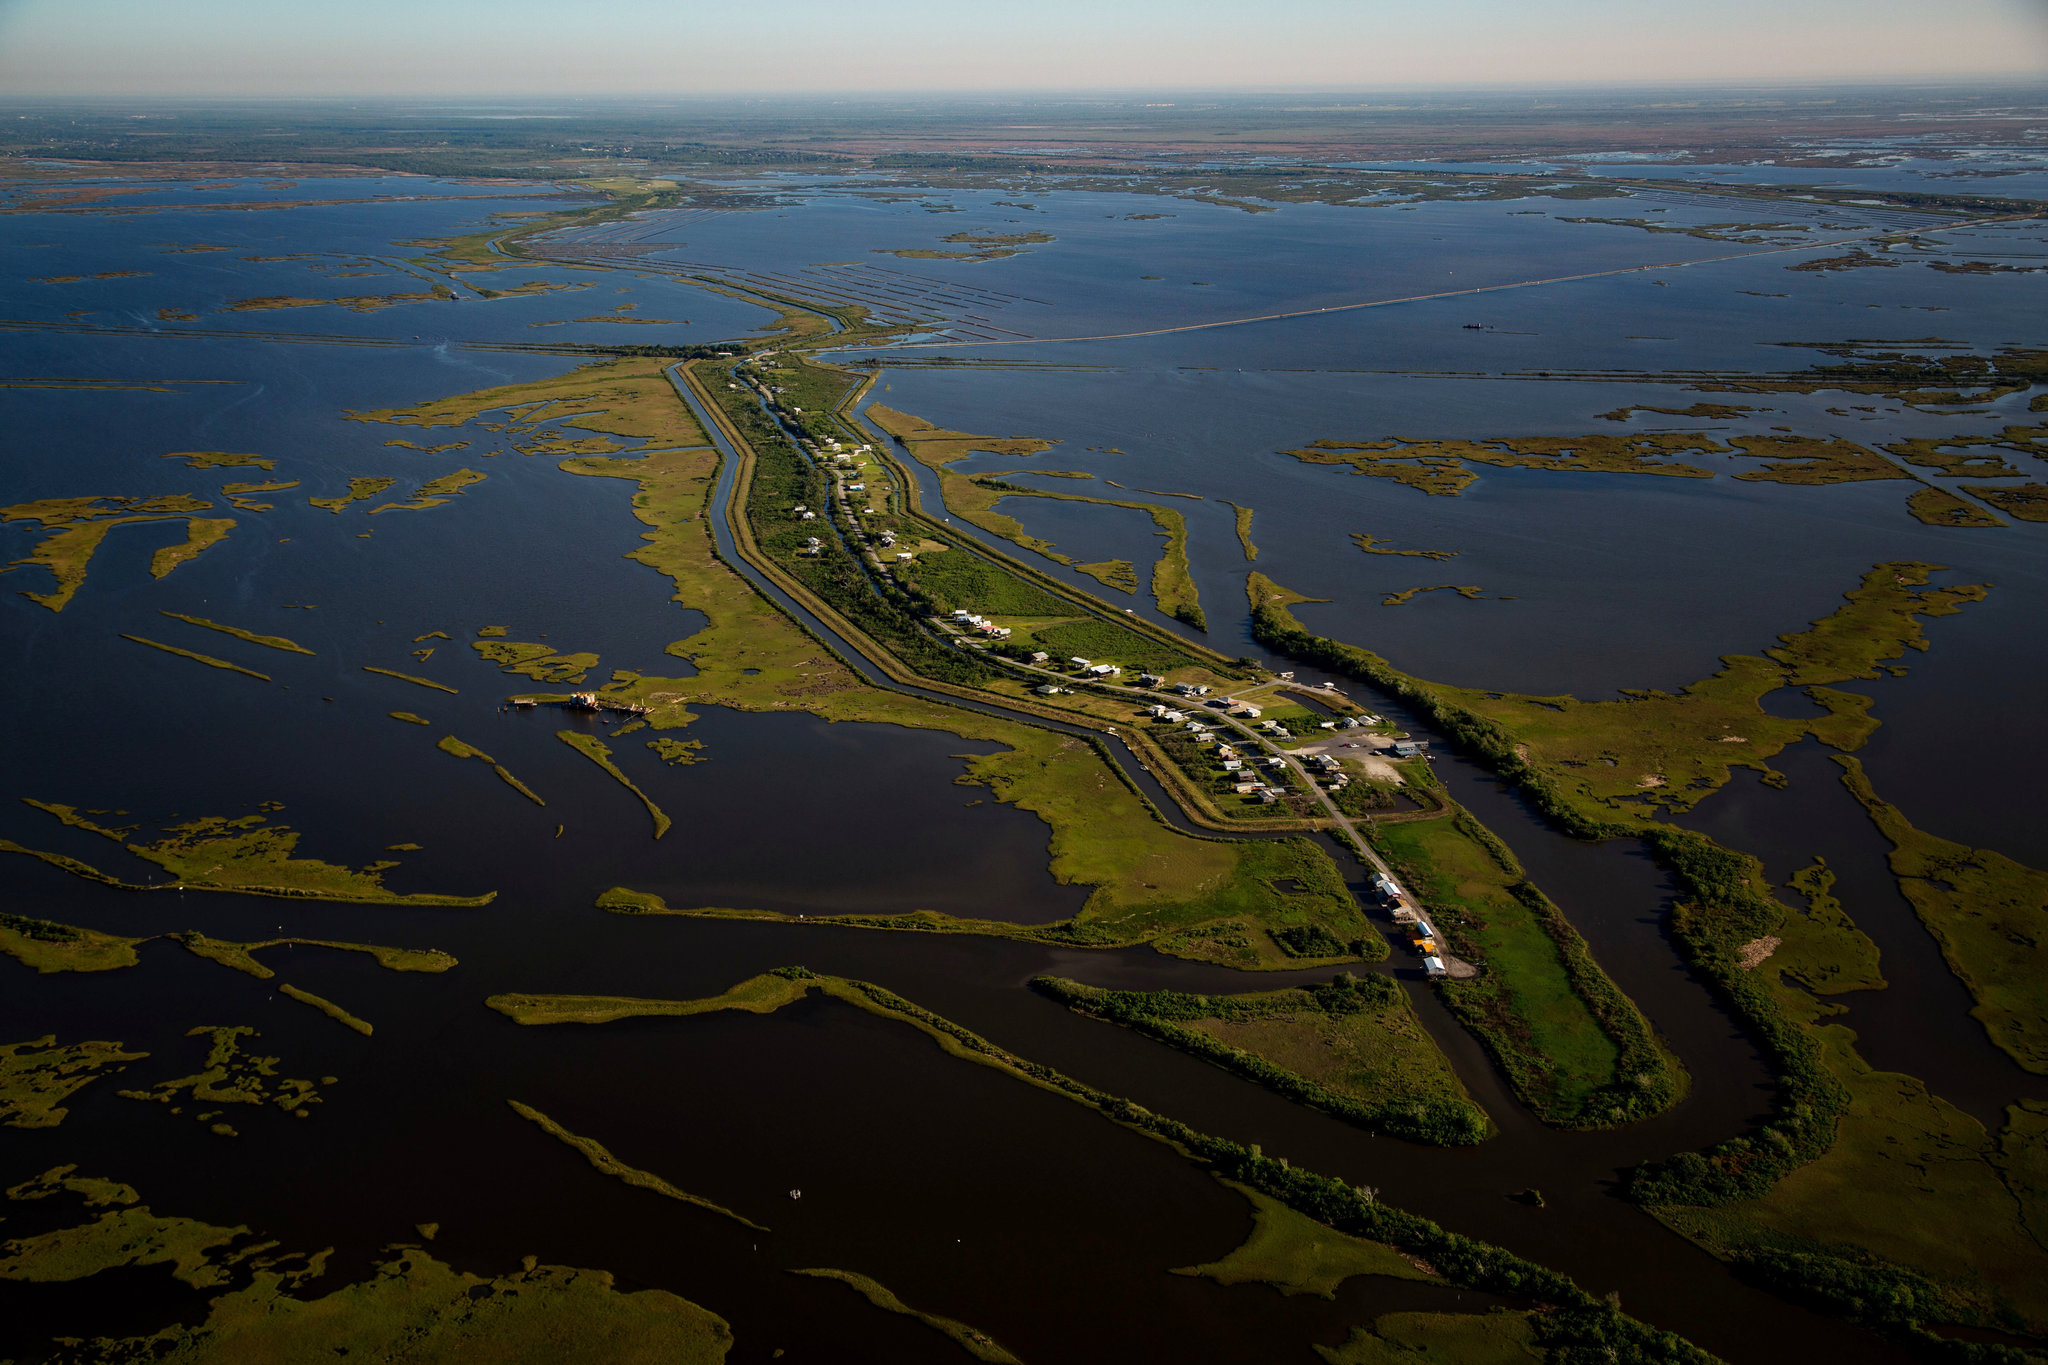 Aerial view of Isle de Jean Charles. Photo by Josh Haner for the New York Times